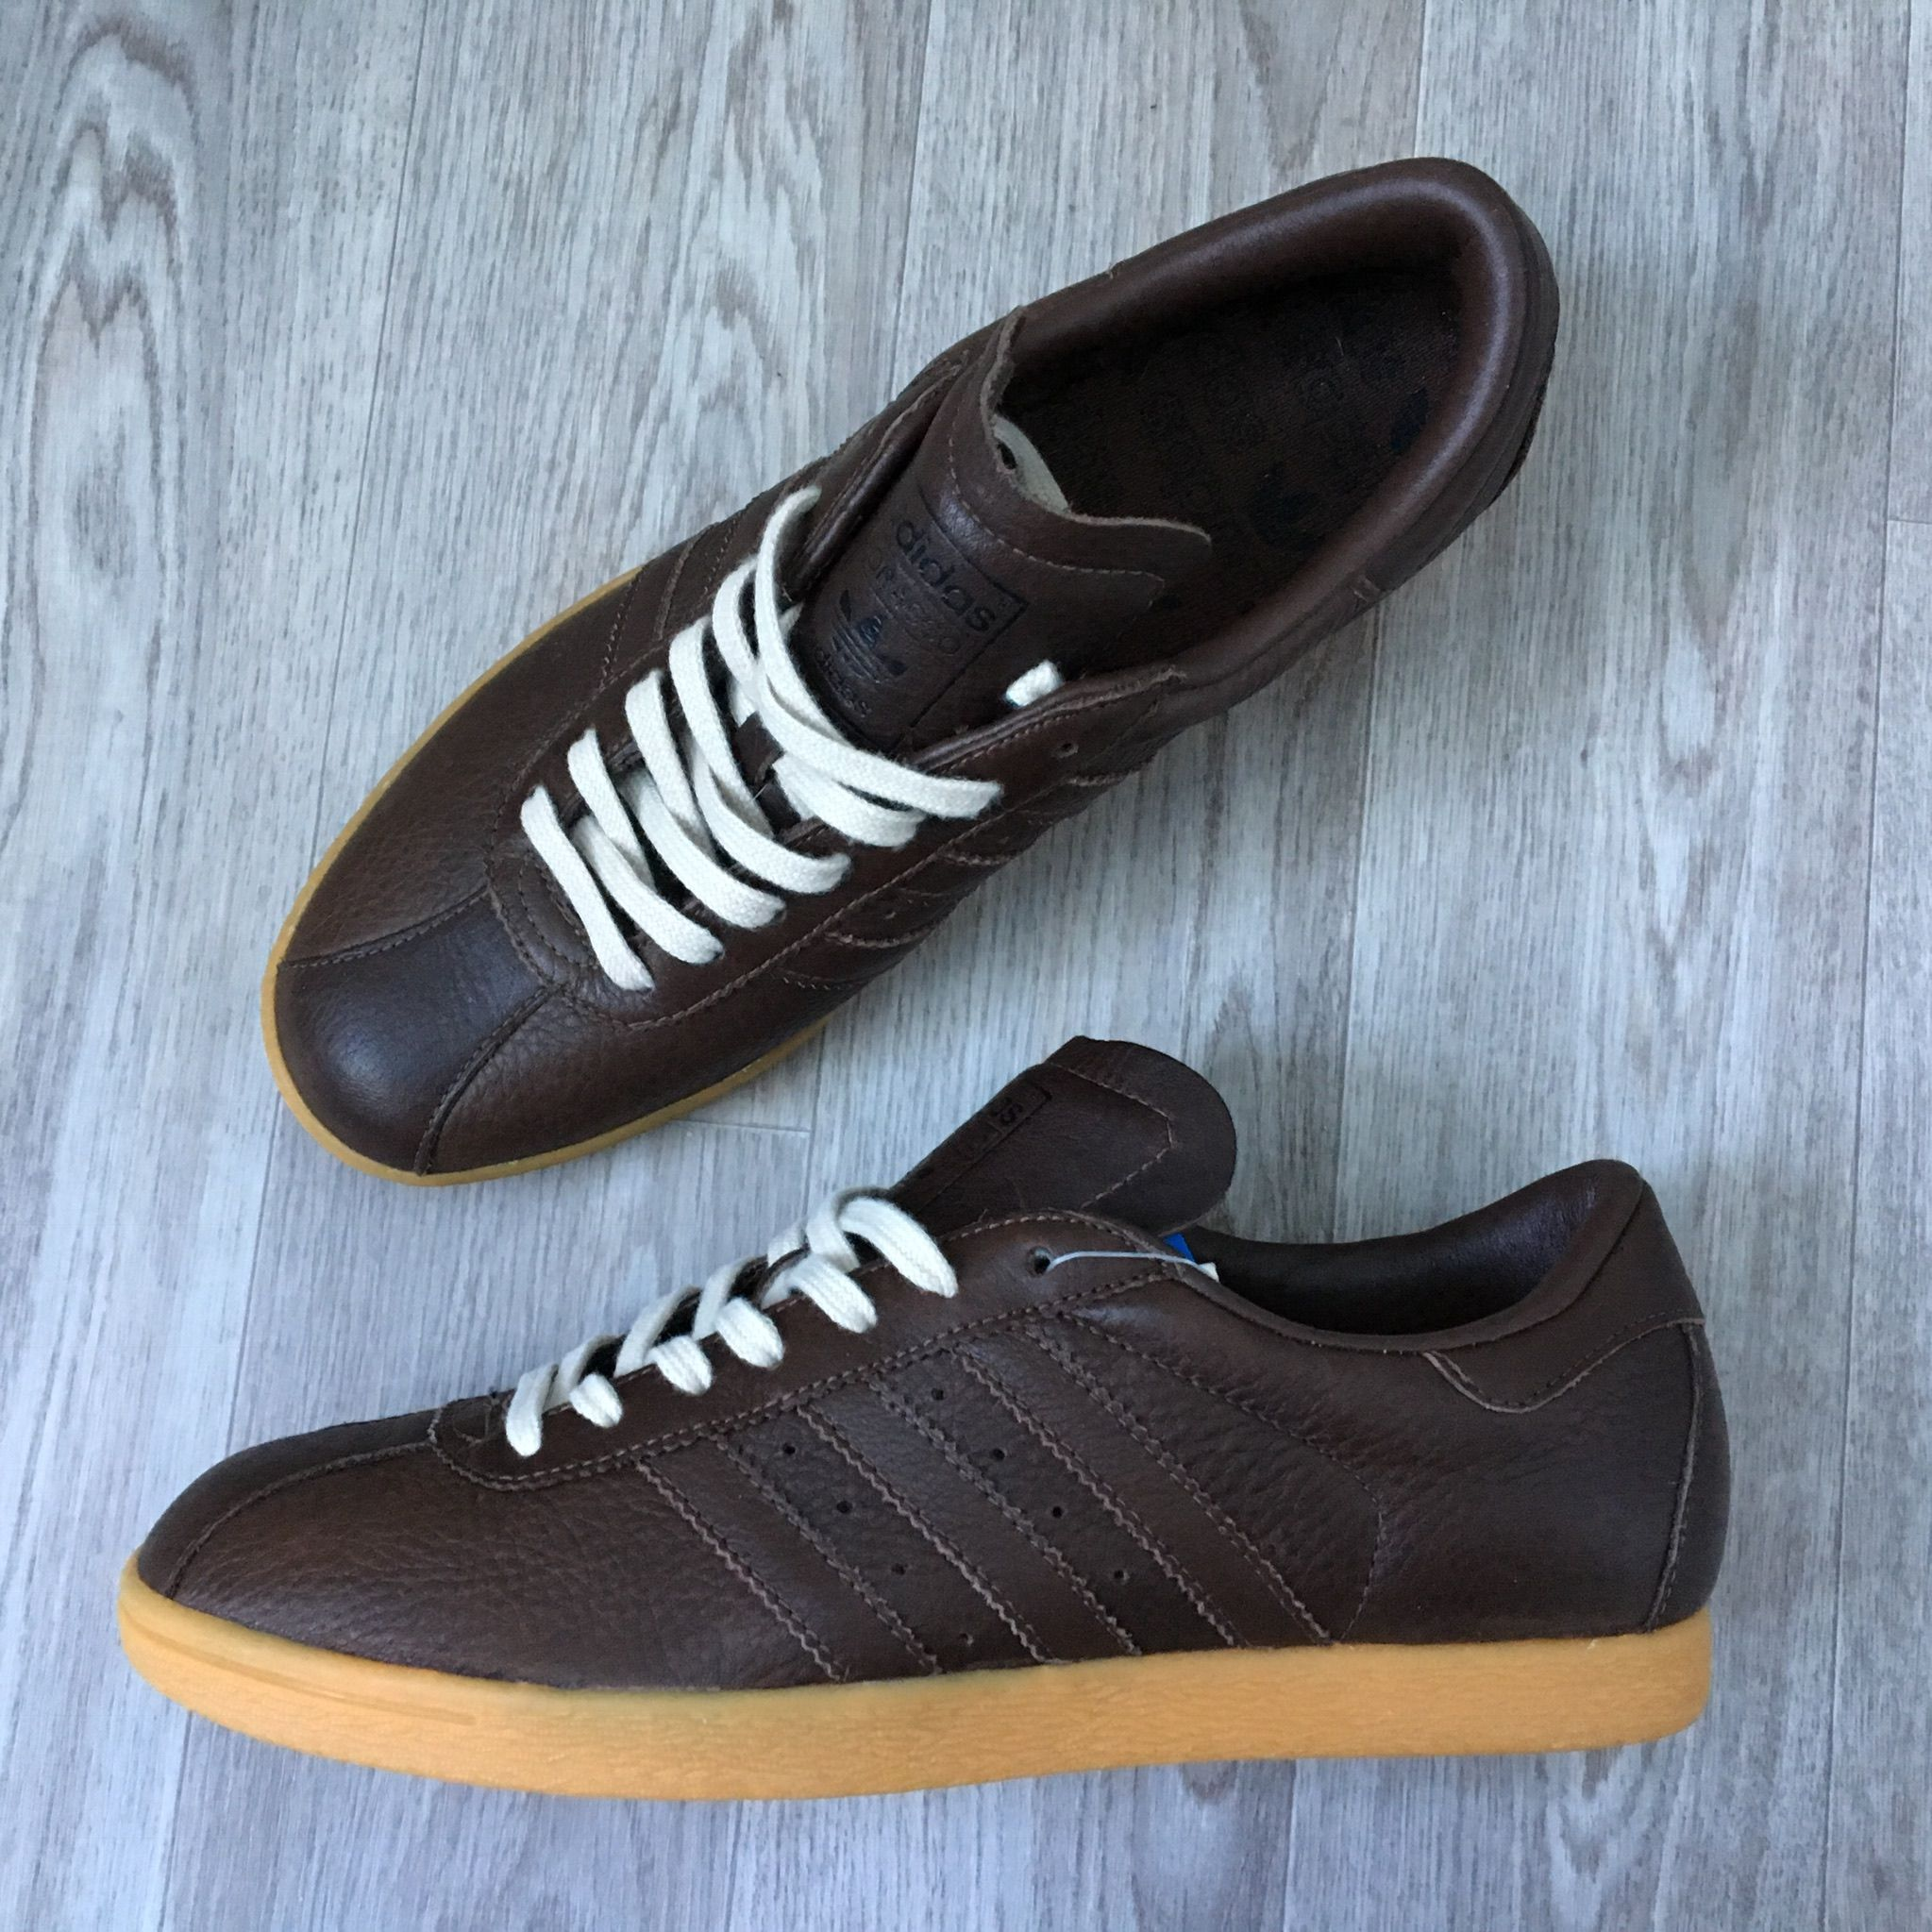 Adidas Tobacco FG. Article  672762. Year  06 01. Made in Indonesia ... 0920b4f791b6